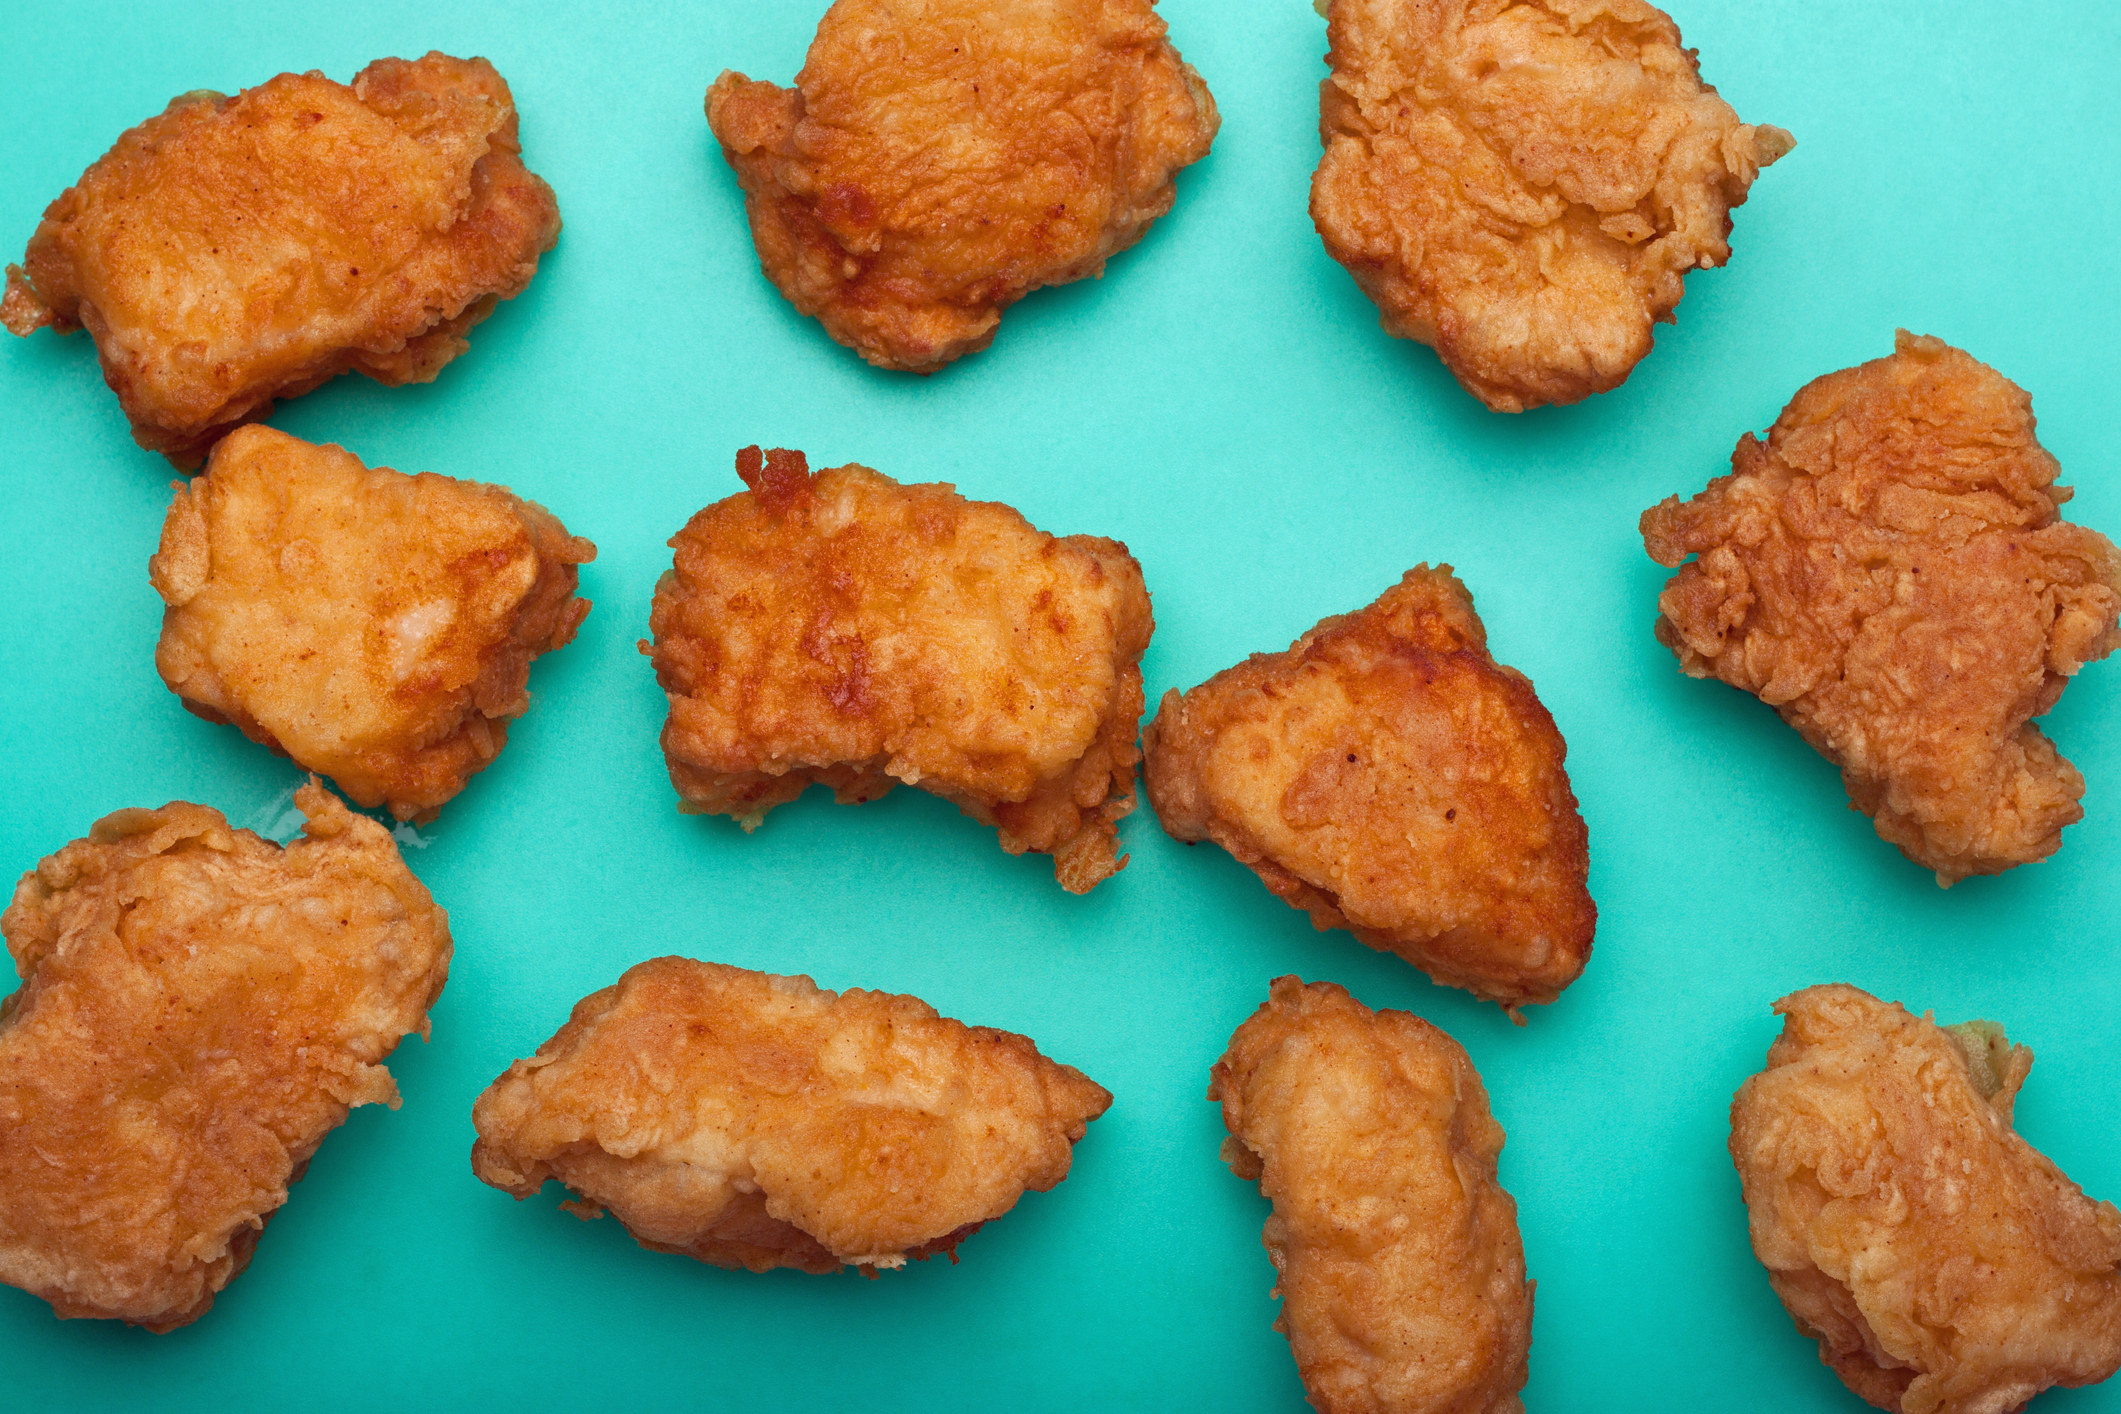 A bunch of wings artfully spread out on a surface